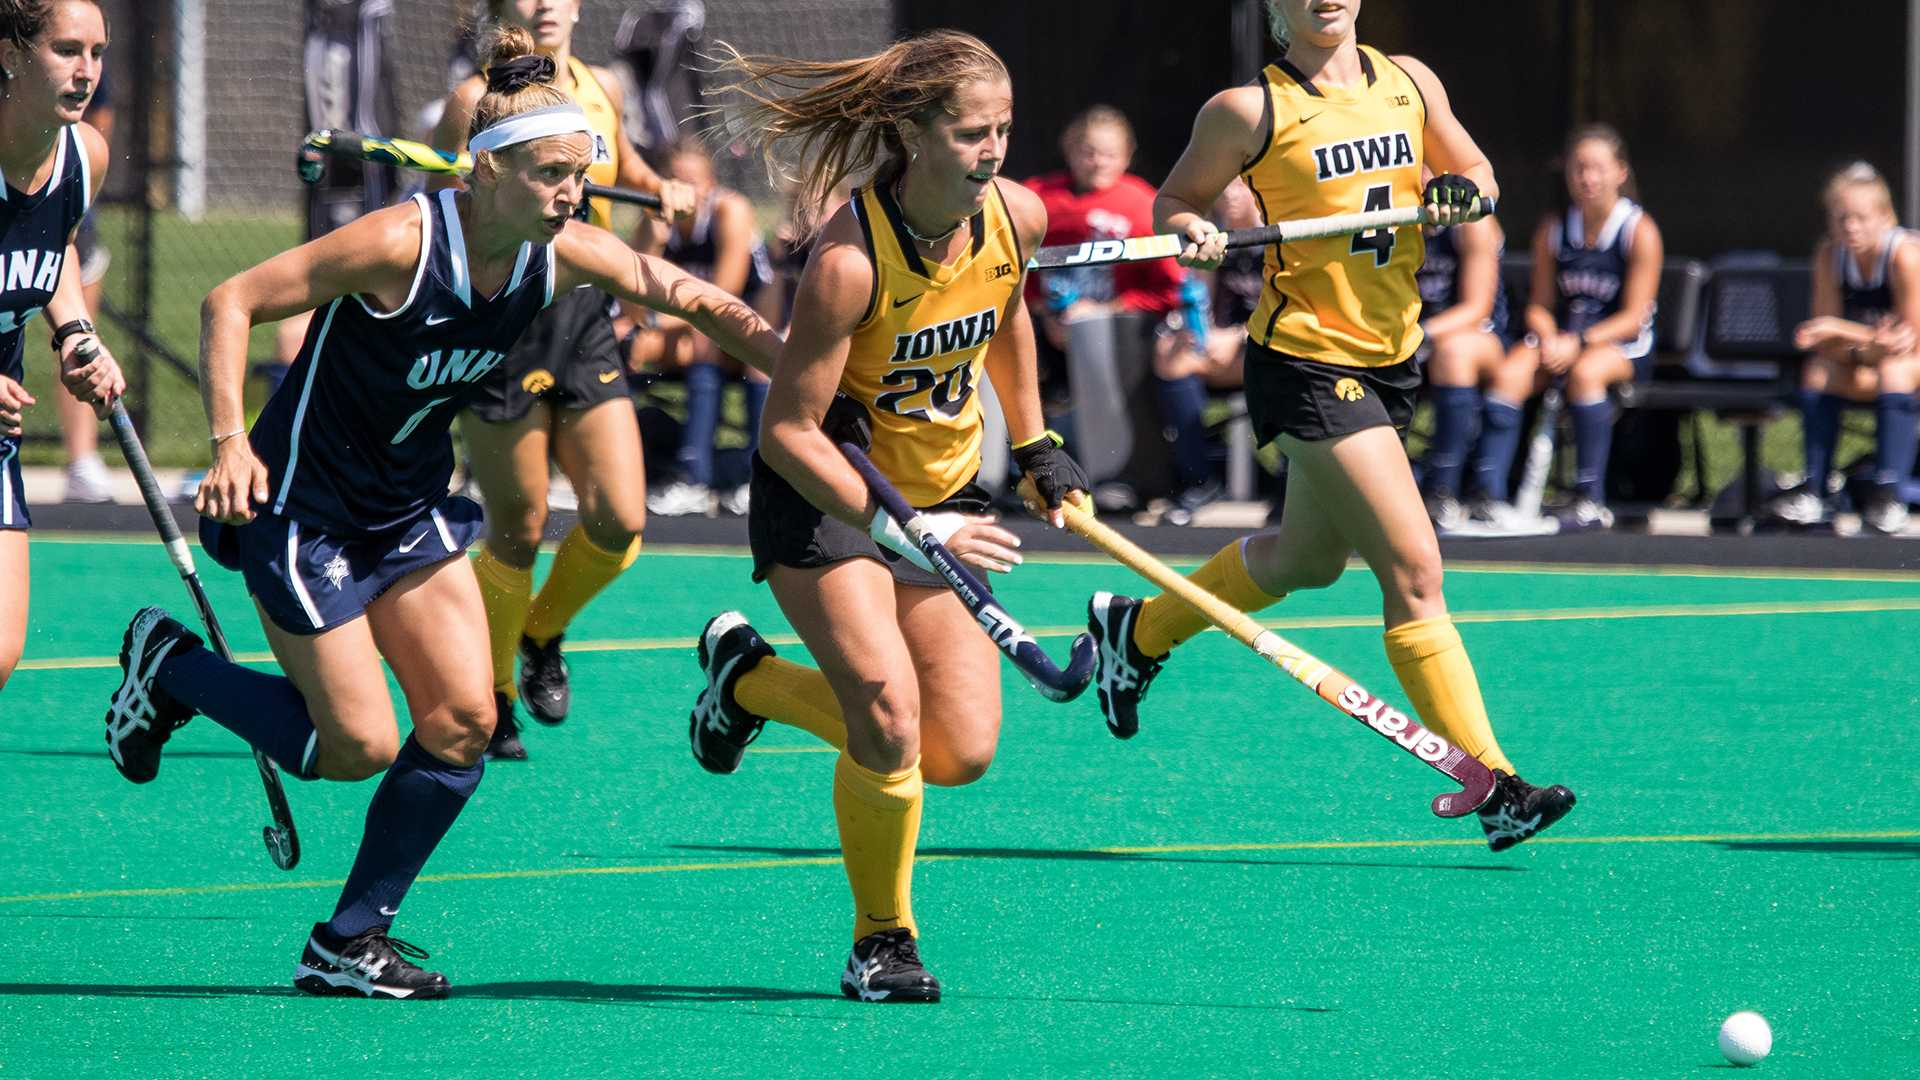 Iowa's Sophie Sunderland chases after the ball during the Iowa-University of New Hampshire field hockey match on Sunday, Sept. 10, 2017. Iowa defeated UNH by a final score of 7-1.